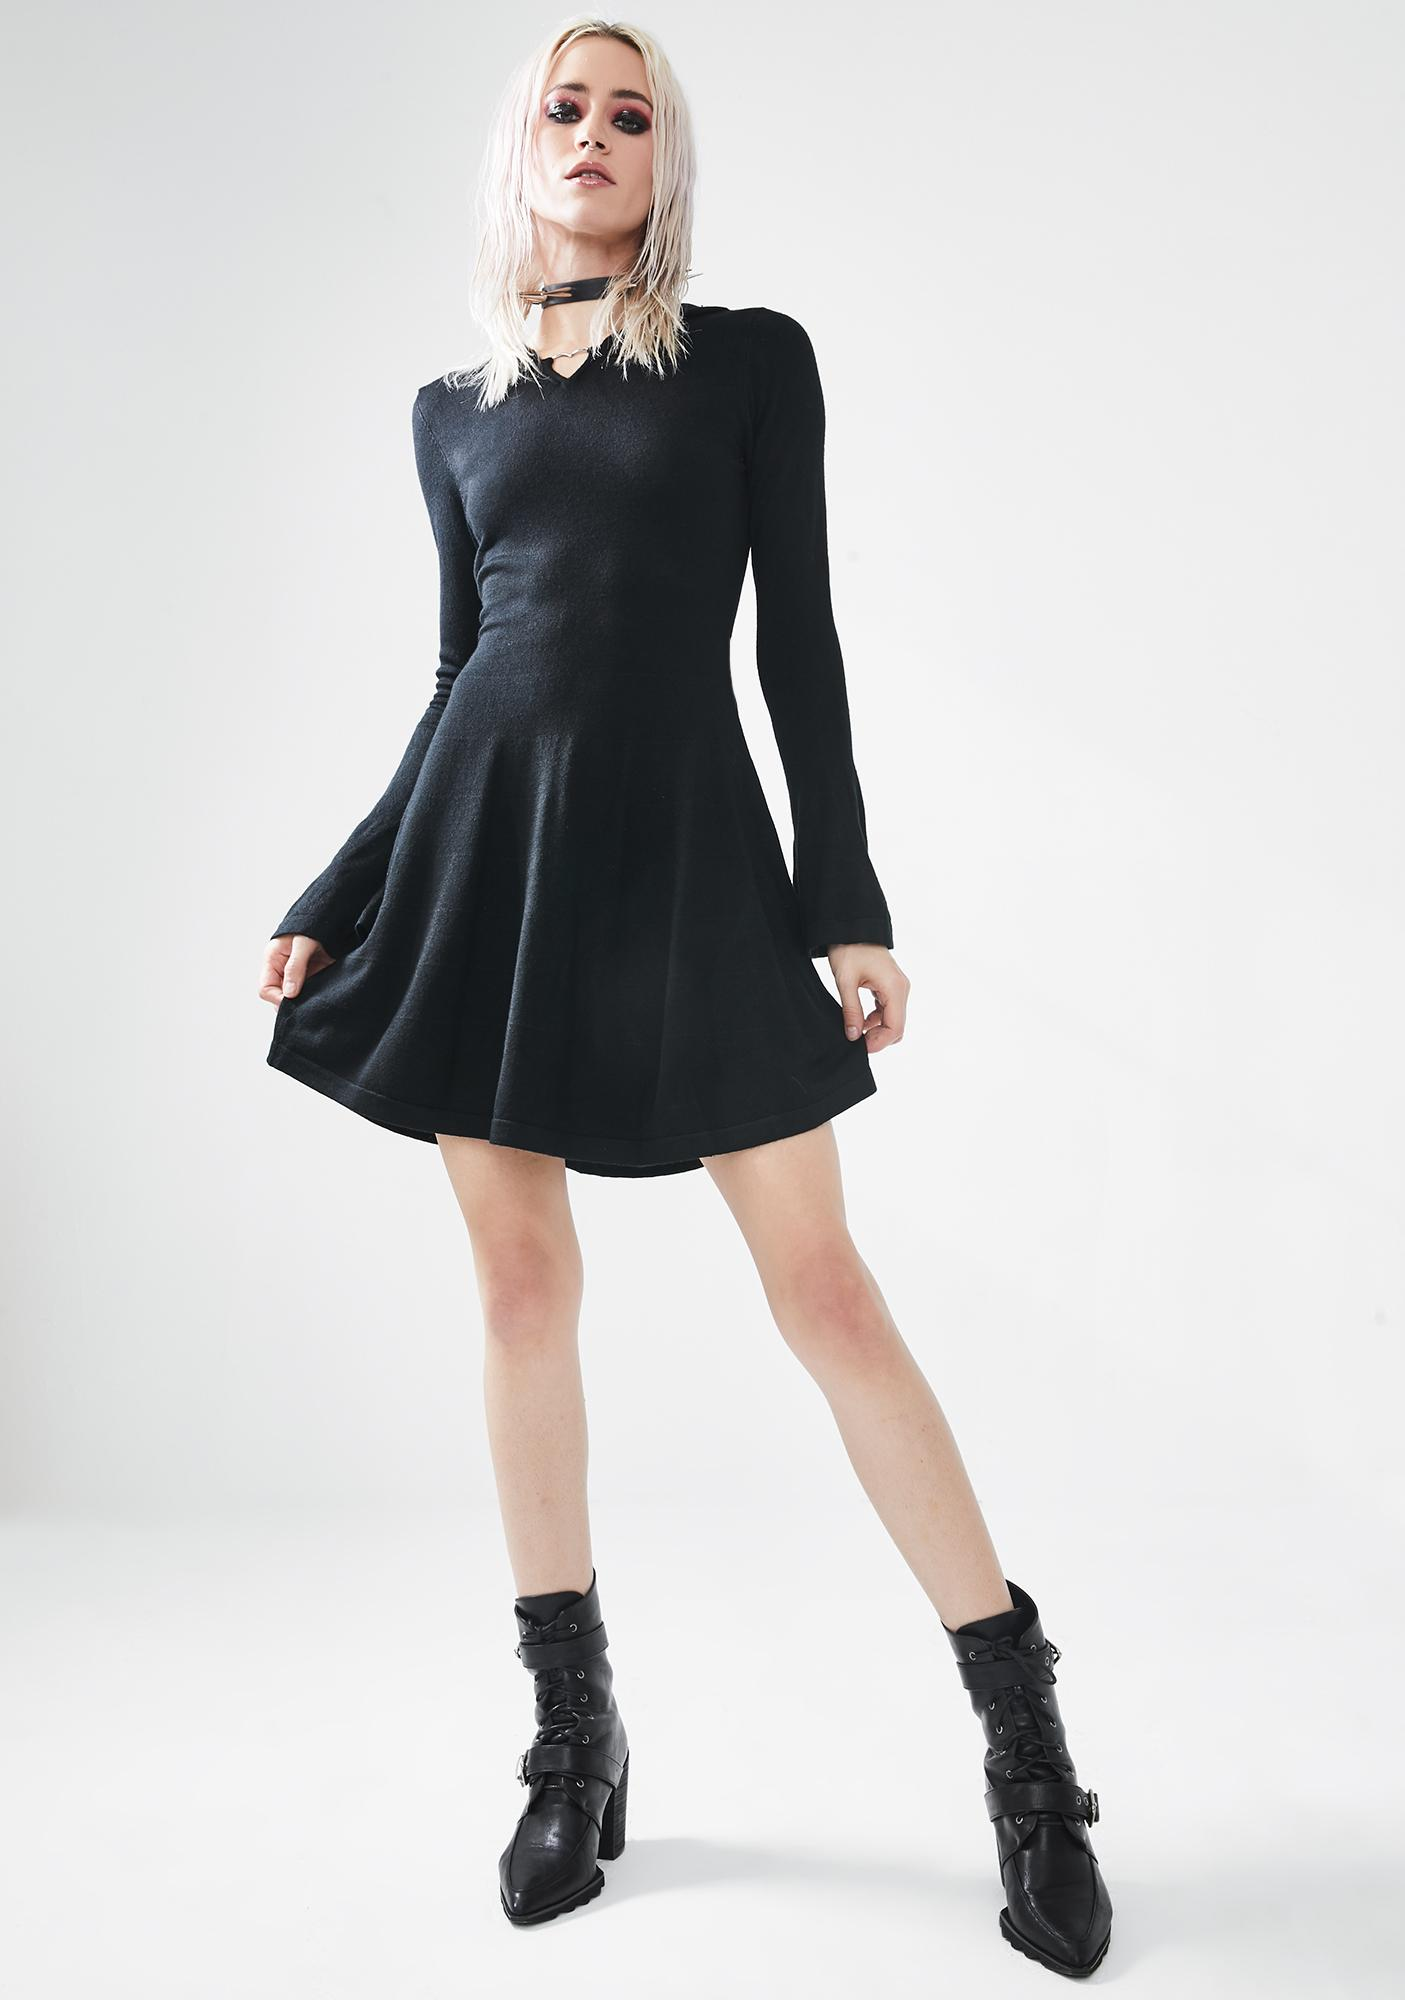 Punk Rave Dark Witch Woolen Dress